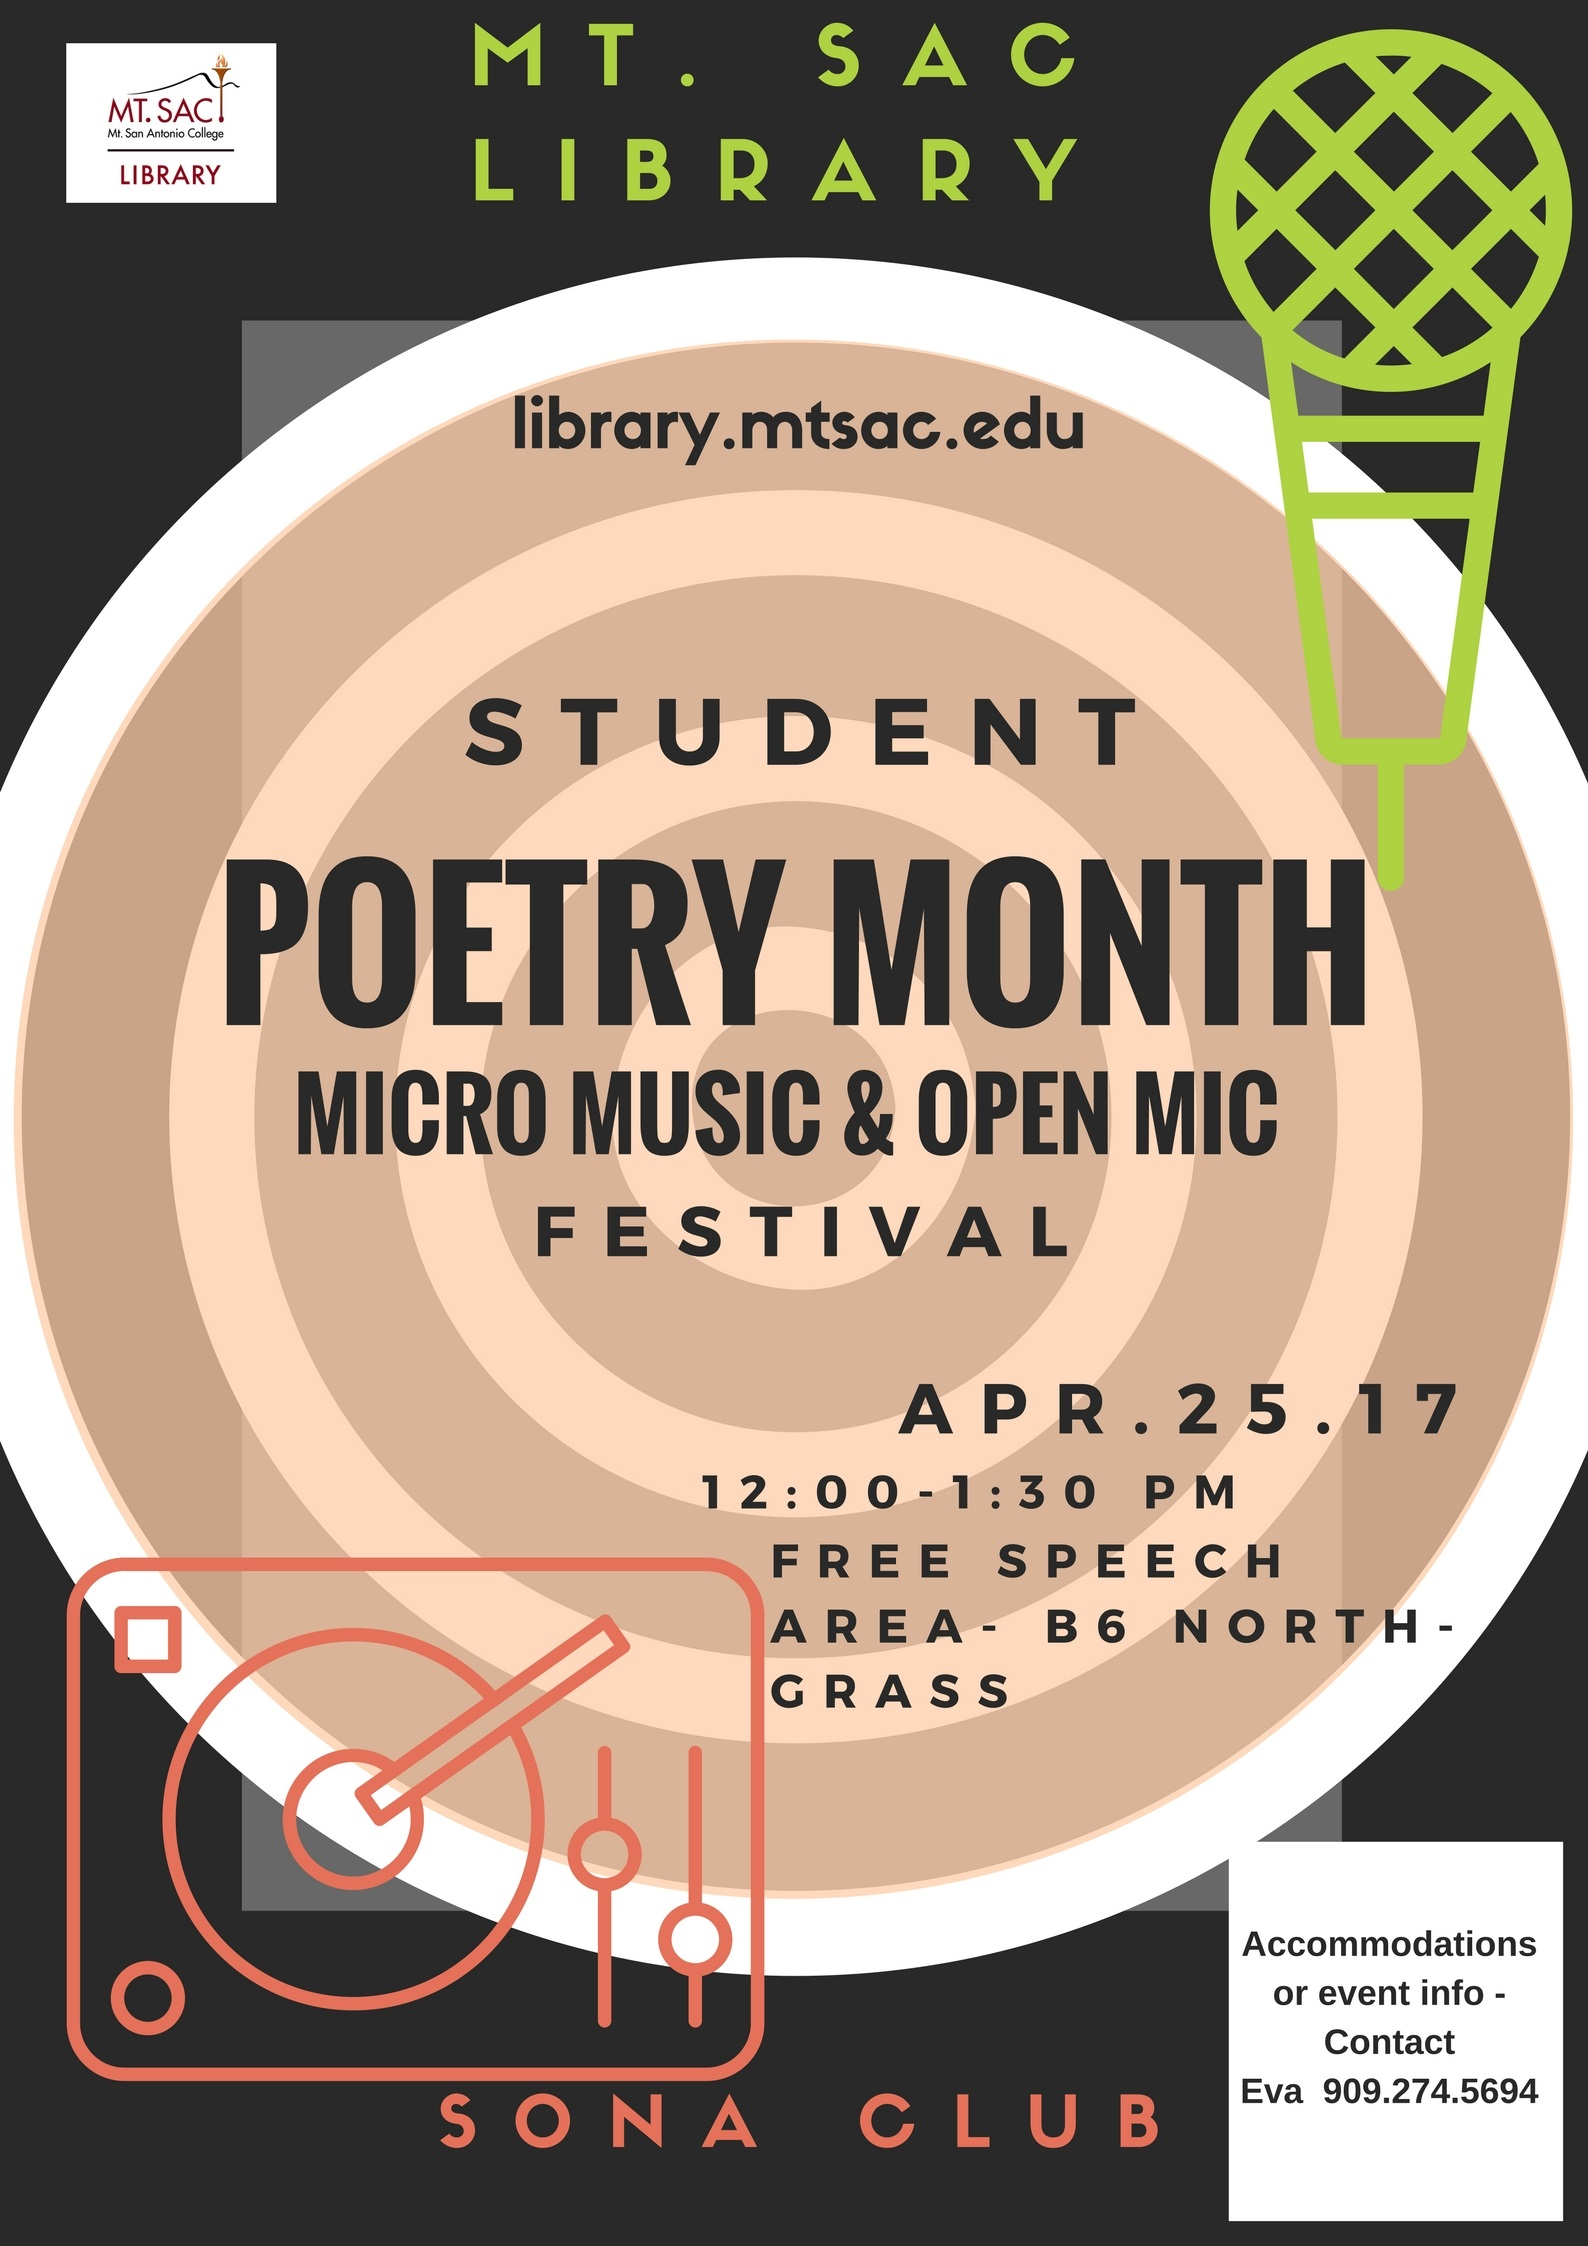 Mt. SAC Library celebrates poetry month